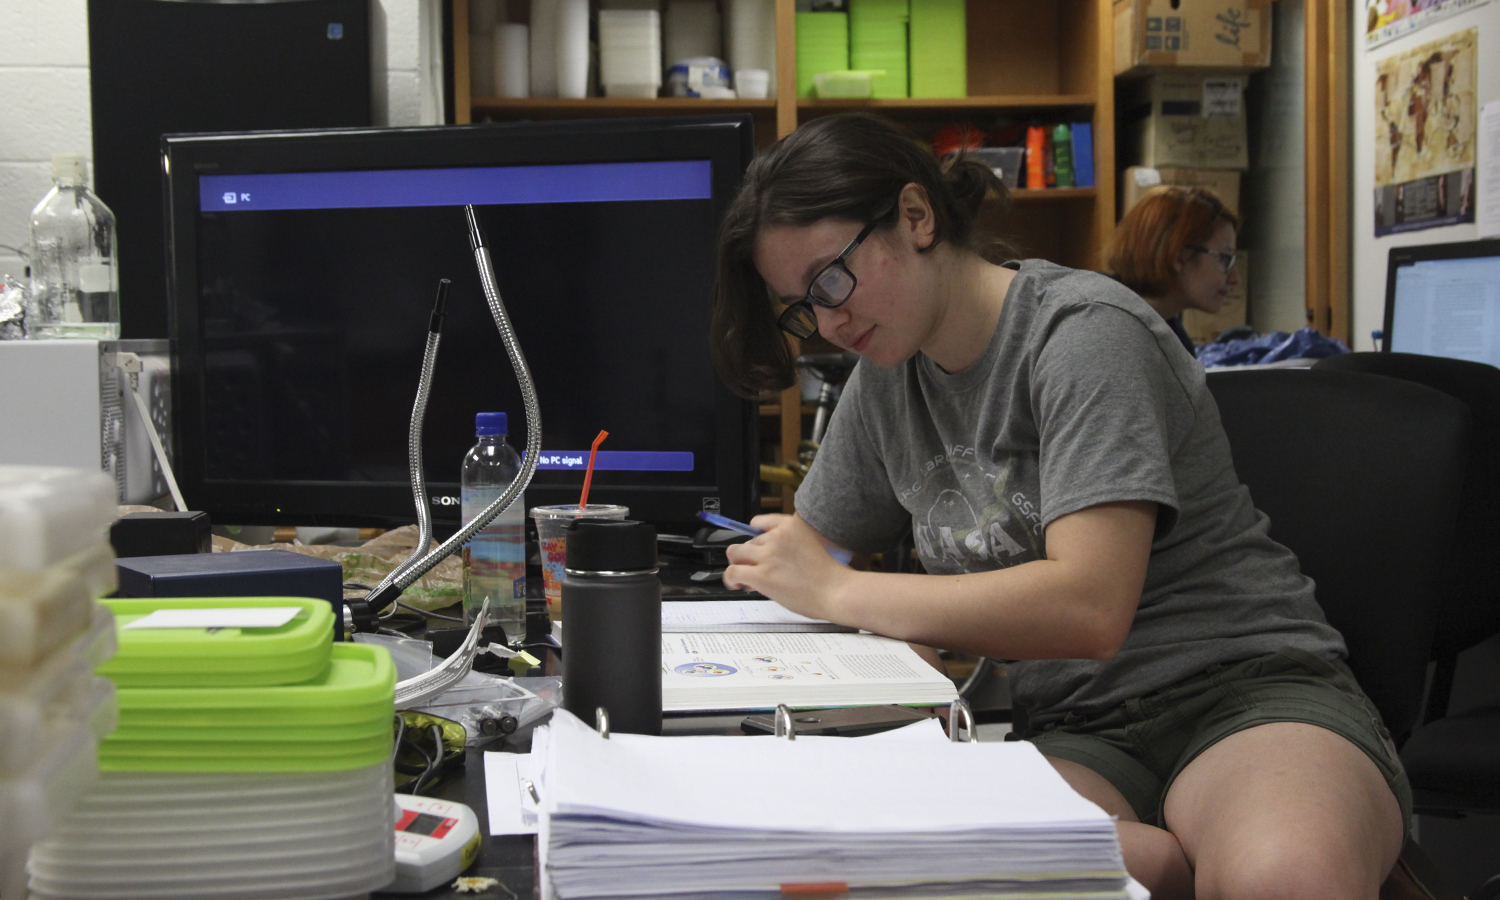 Britta Goncarovs '21 sits taking notes while doing Salamander Research with Professors Cosentino and Droney in the Biology Department